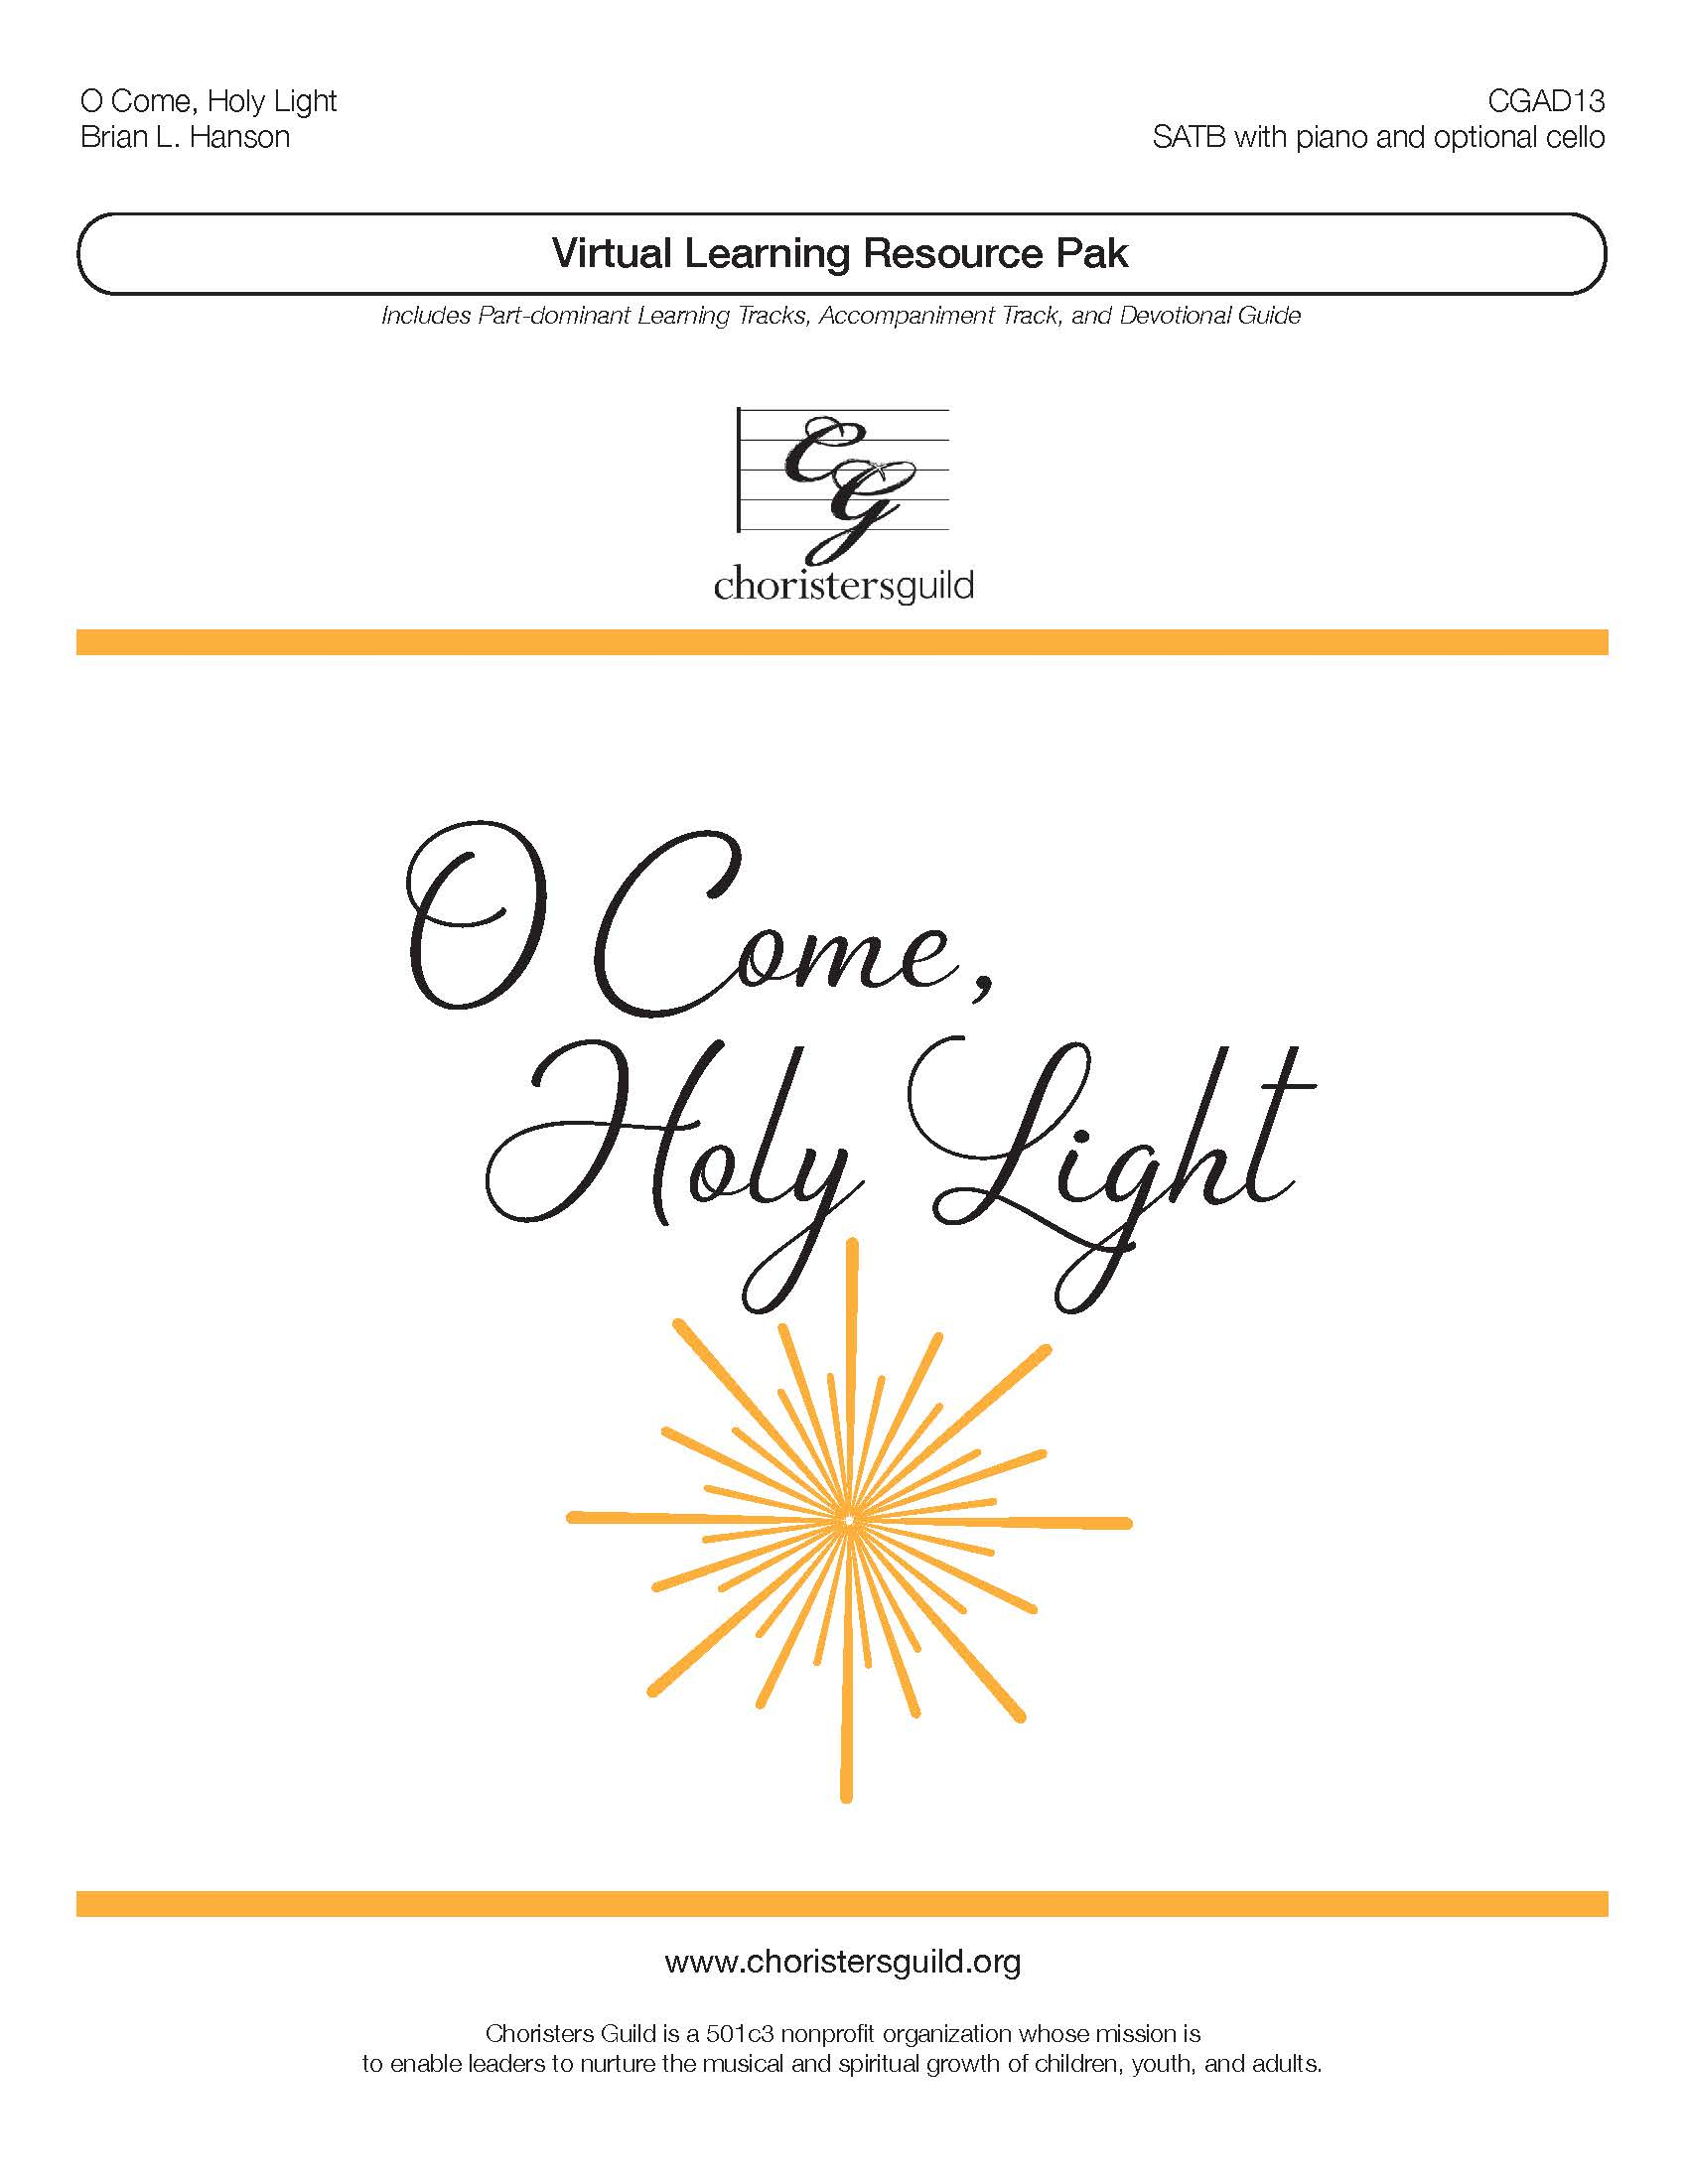 O Come Holy Light (Virtual Learning Resource Pak) - SATB